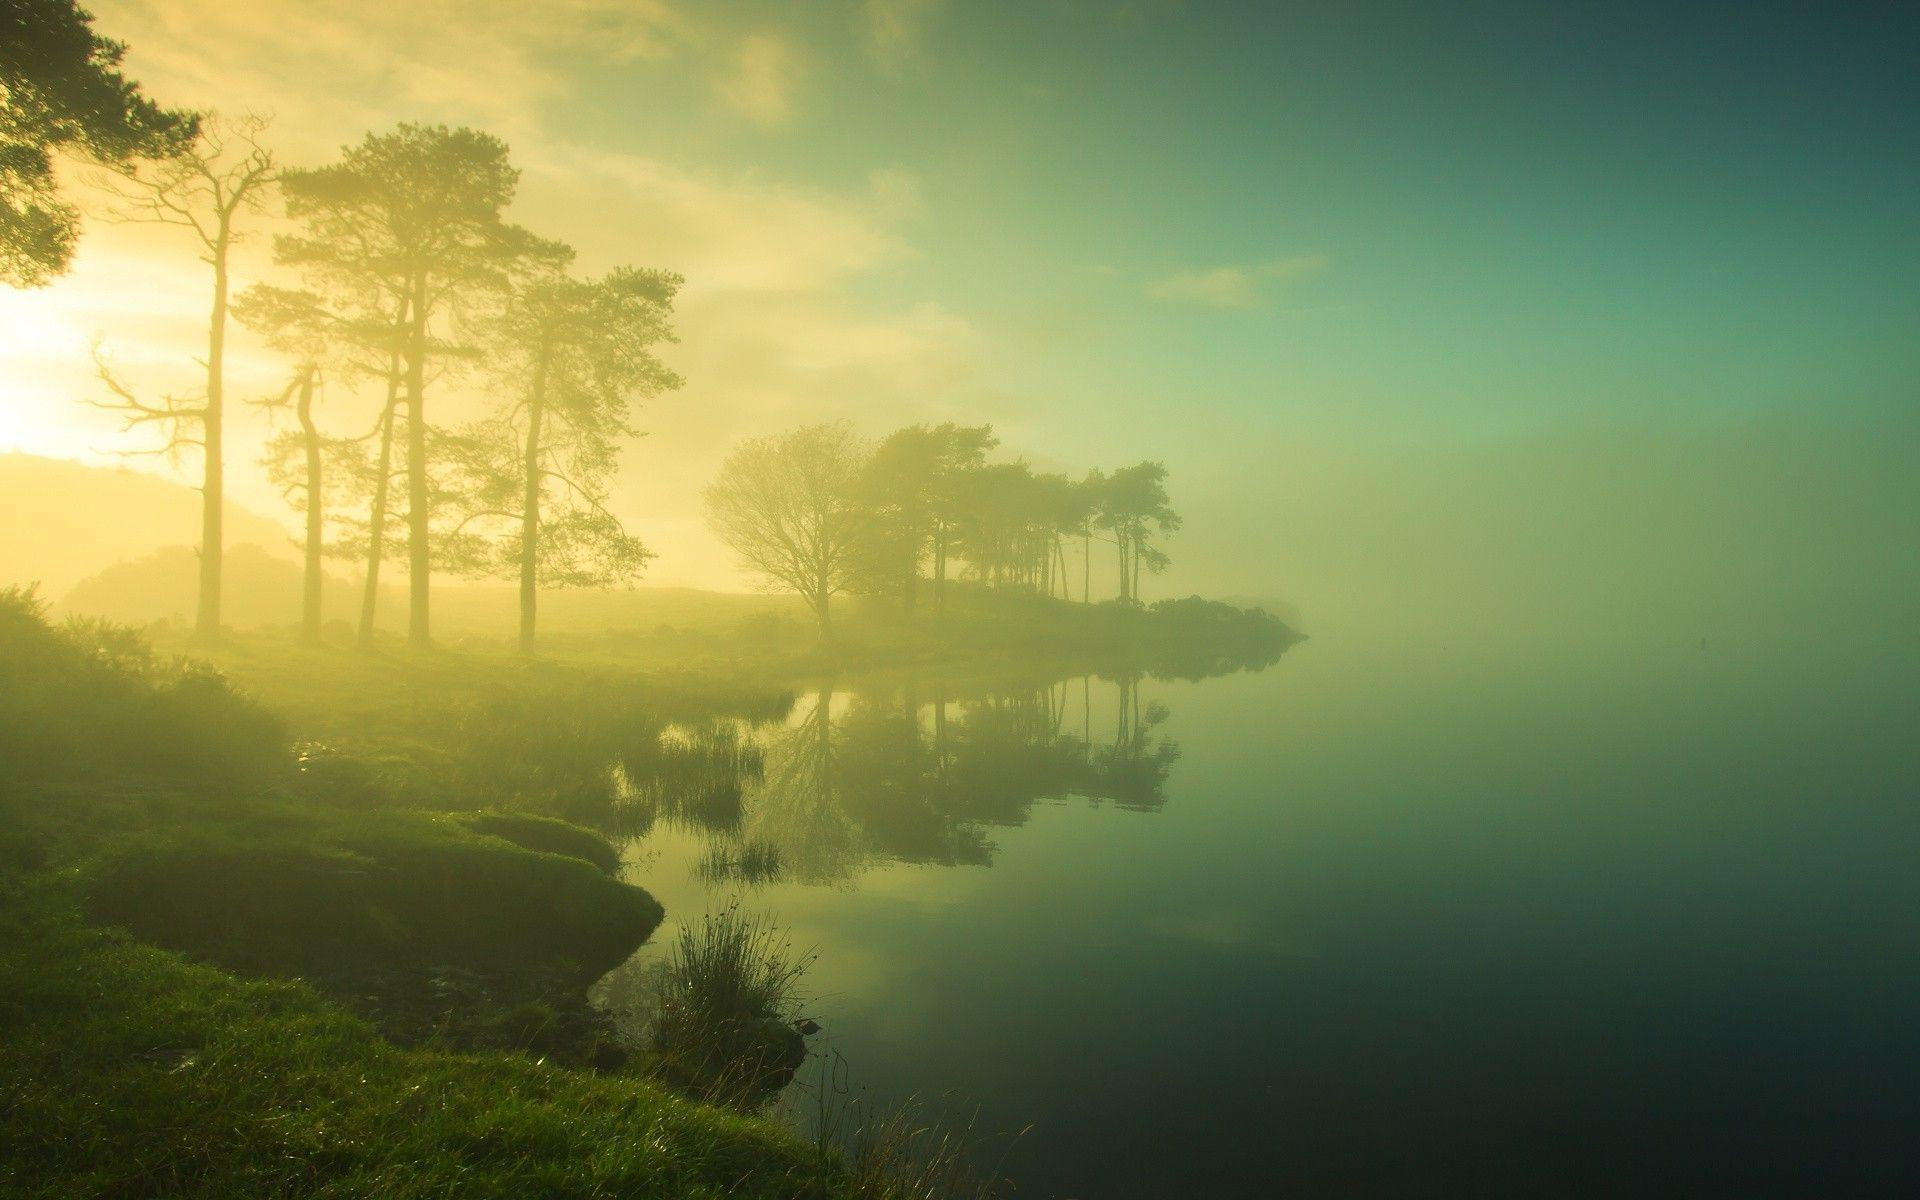 Morning Mist On The Lake Wallpaper #19371 | Chainimage